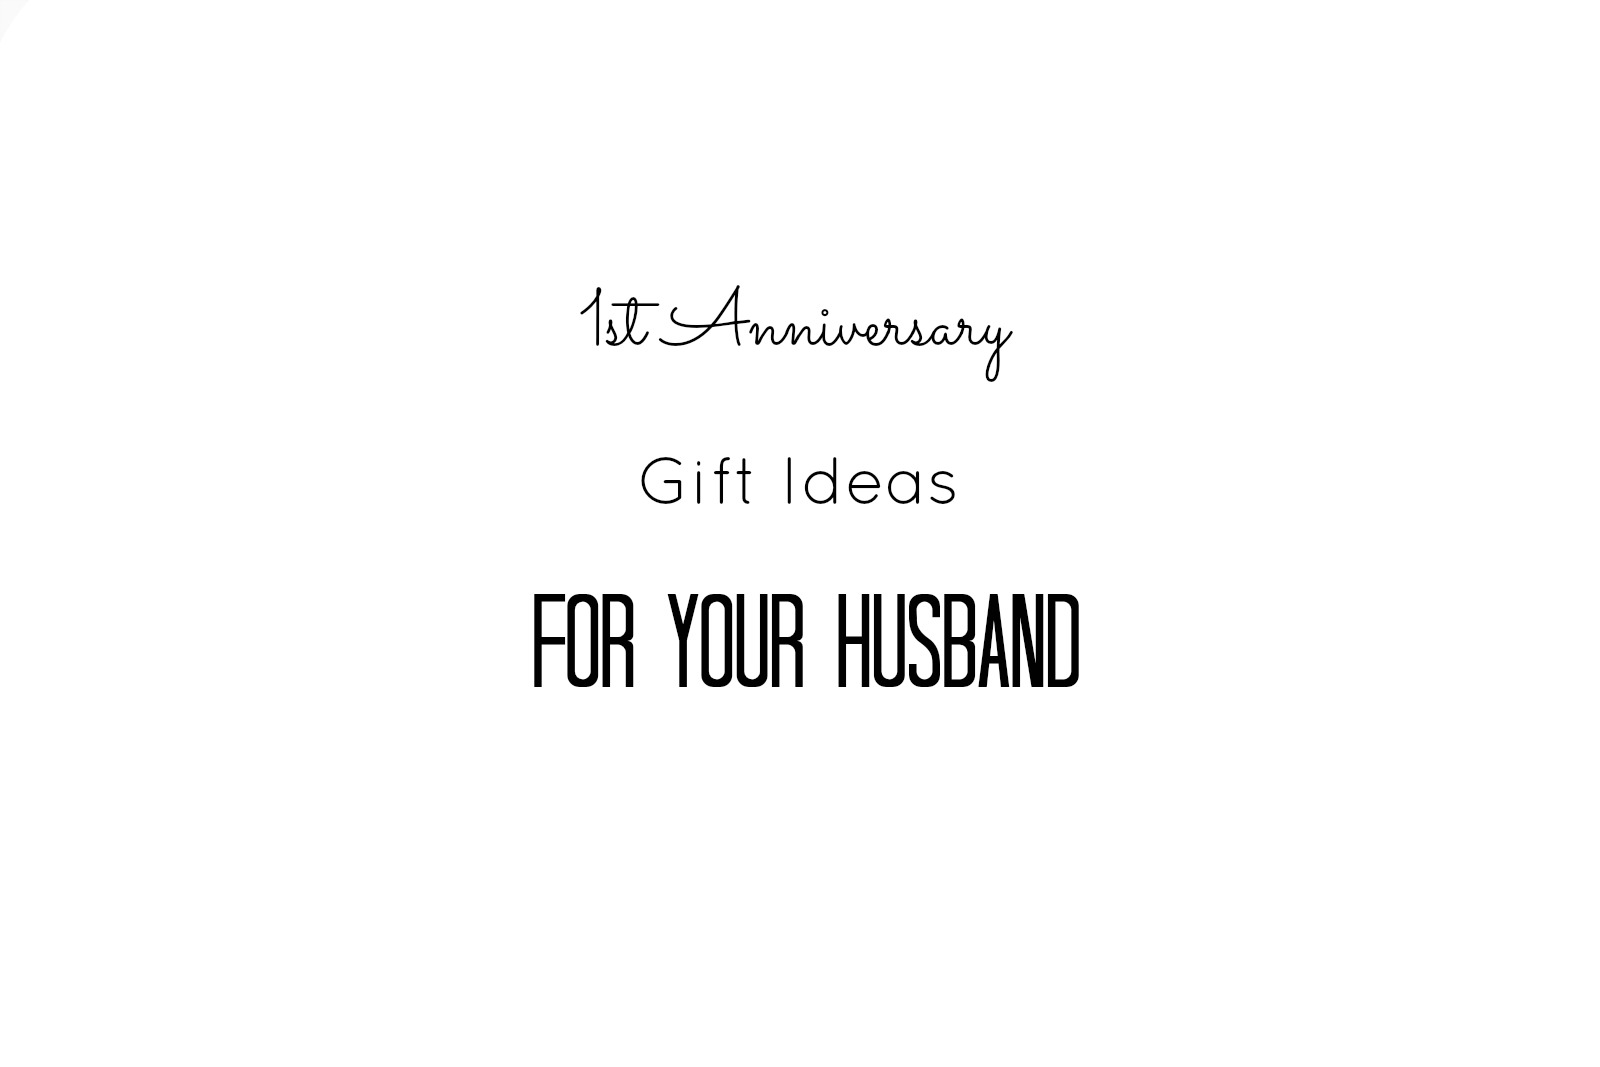 1st anniversary gift ideas for your husband — runway chef